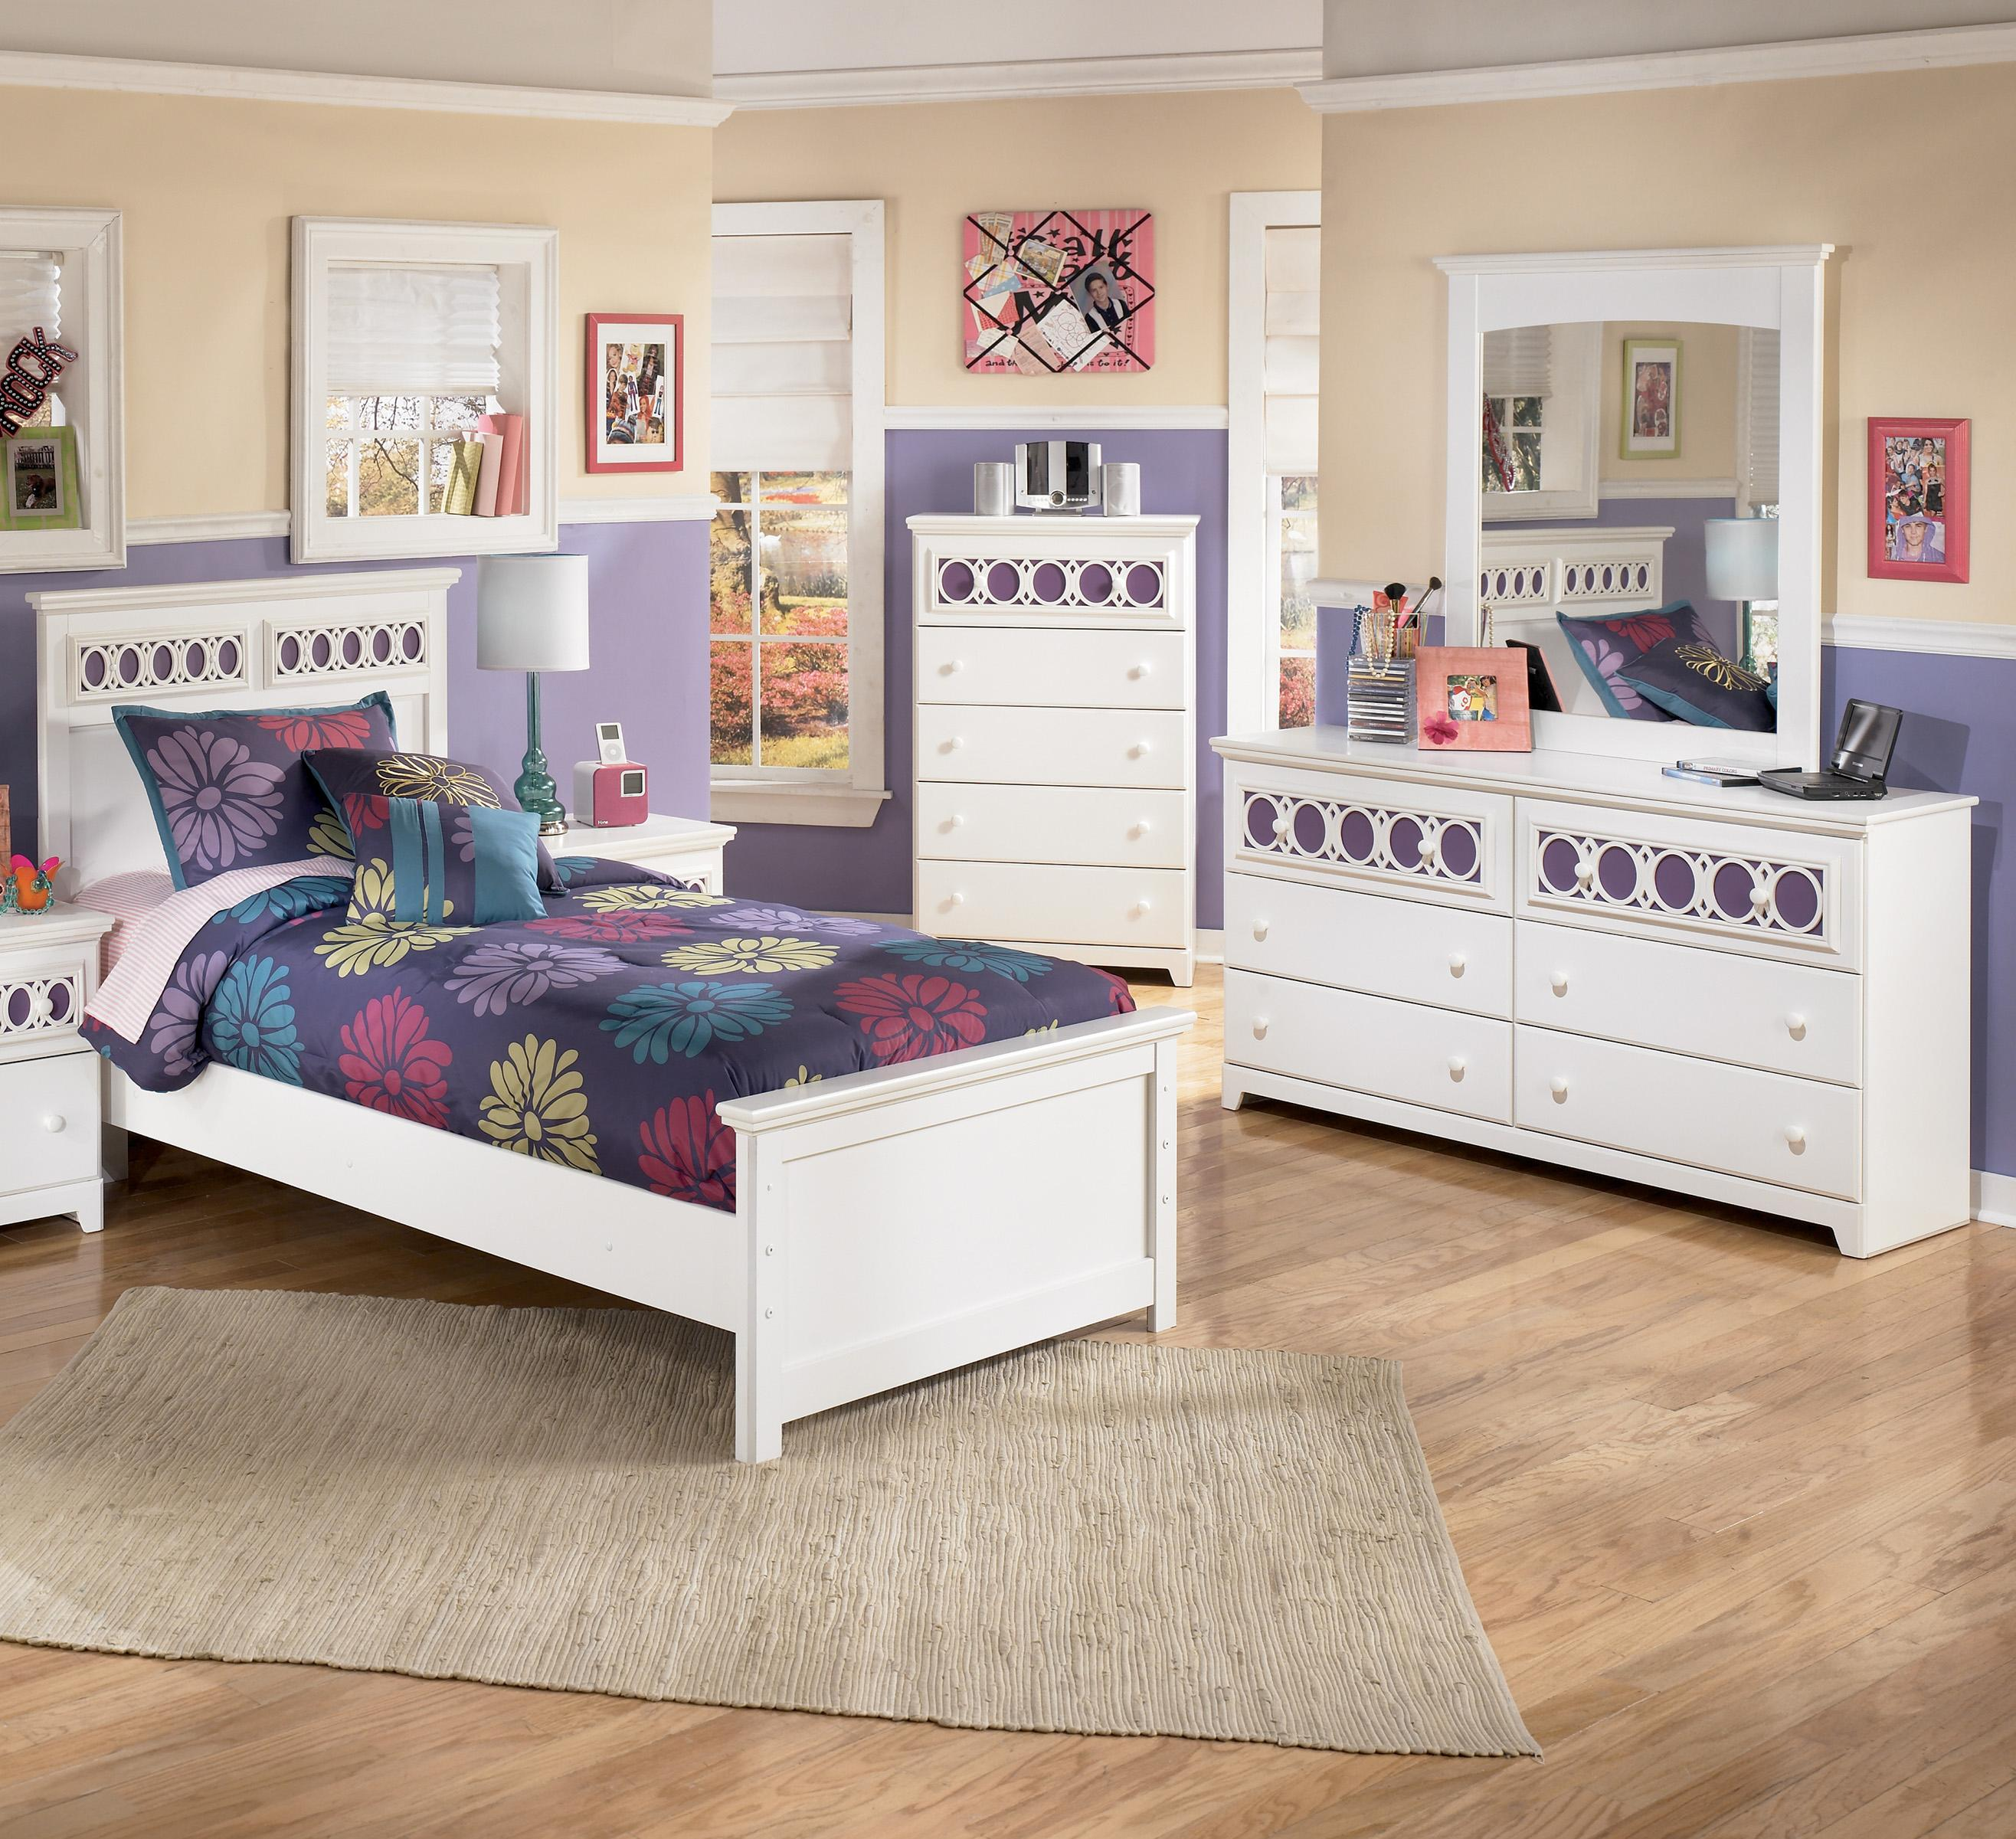 Signature Design by Ashley Zayley 3 Piece Twin Bedroom Group - Item Number: B131 T 3 Piece